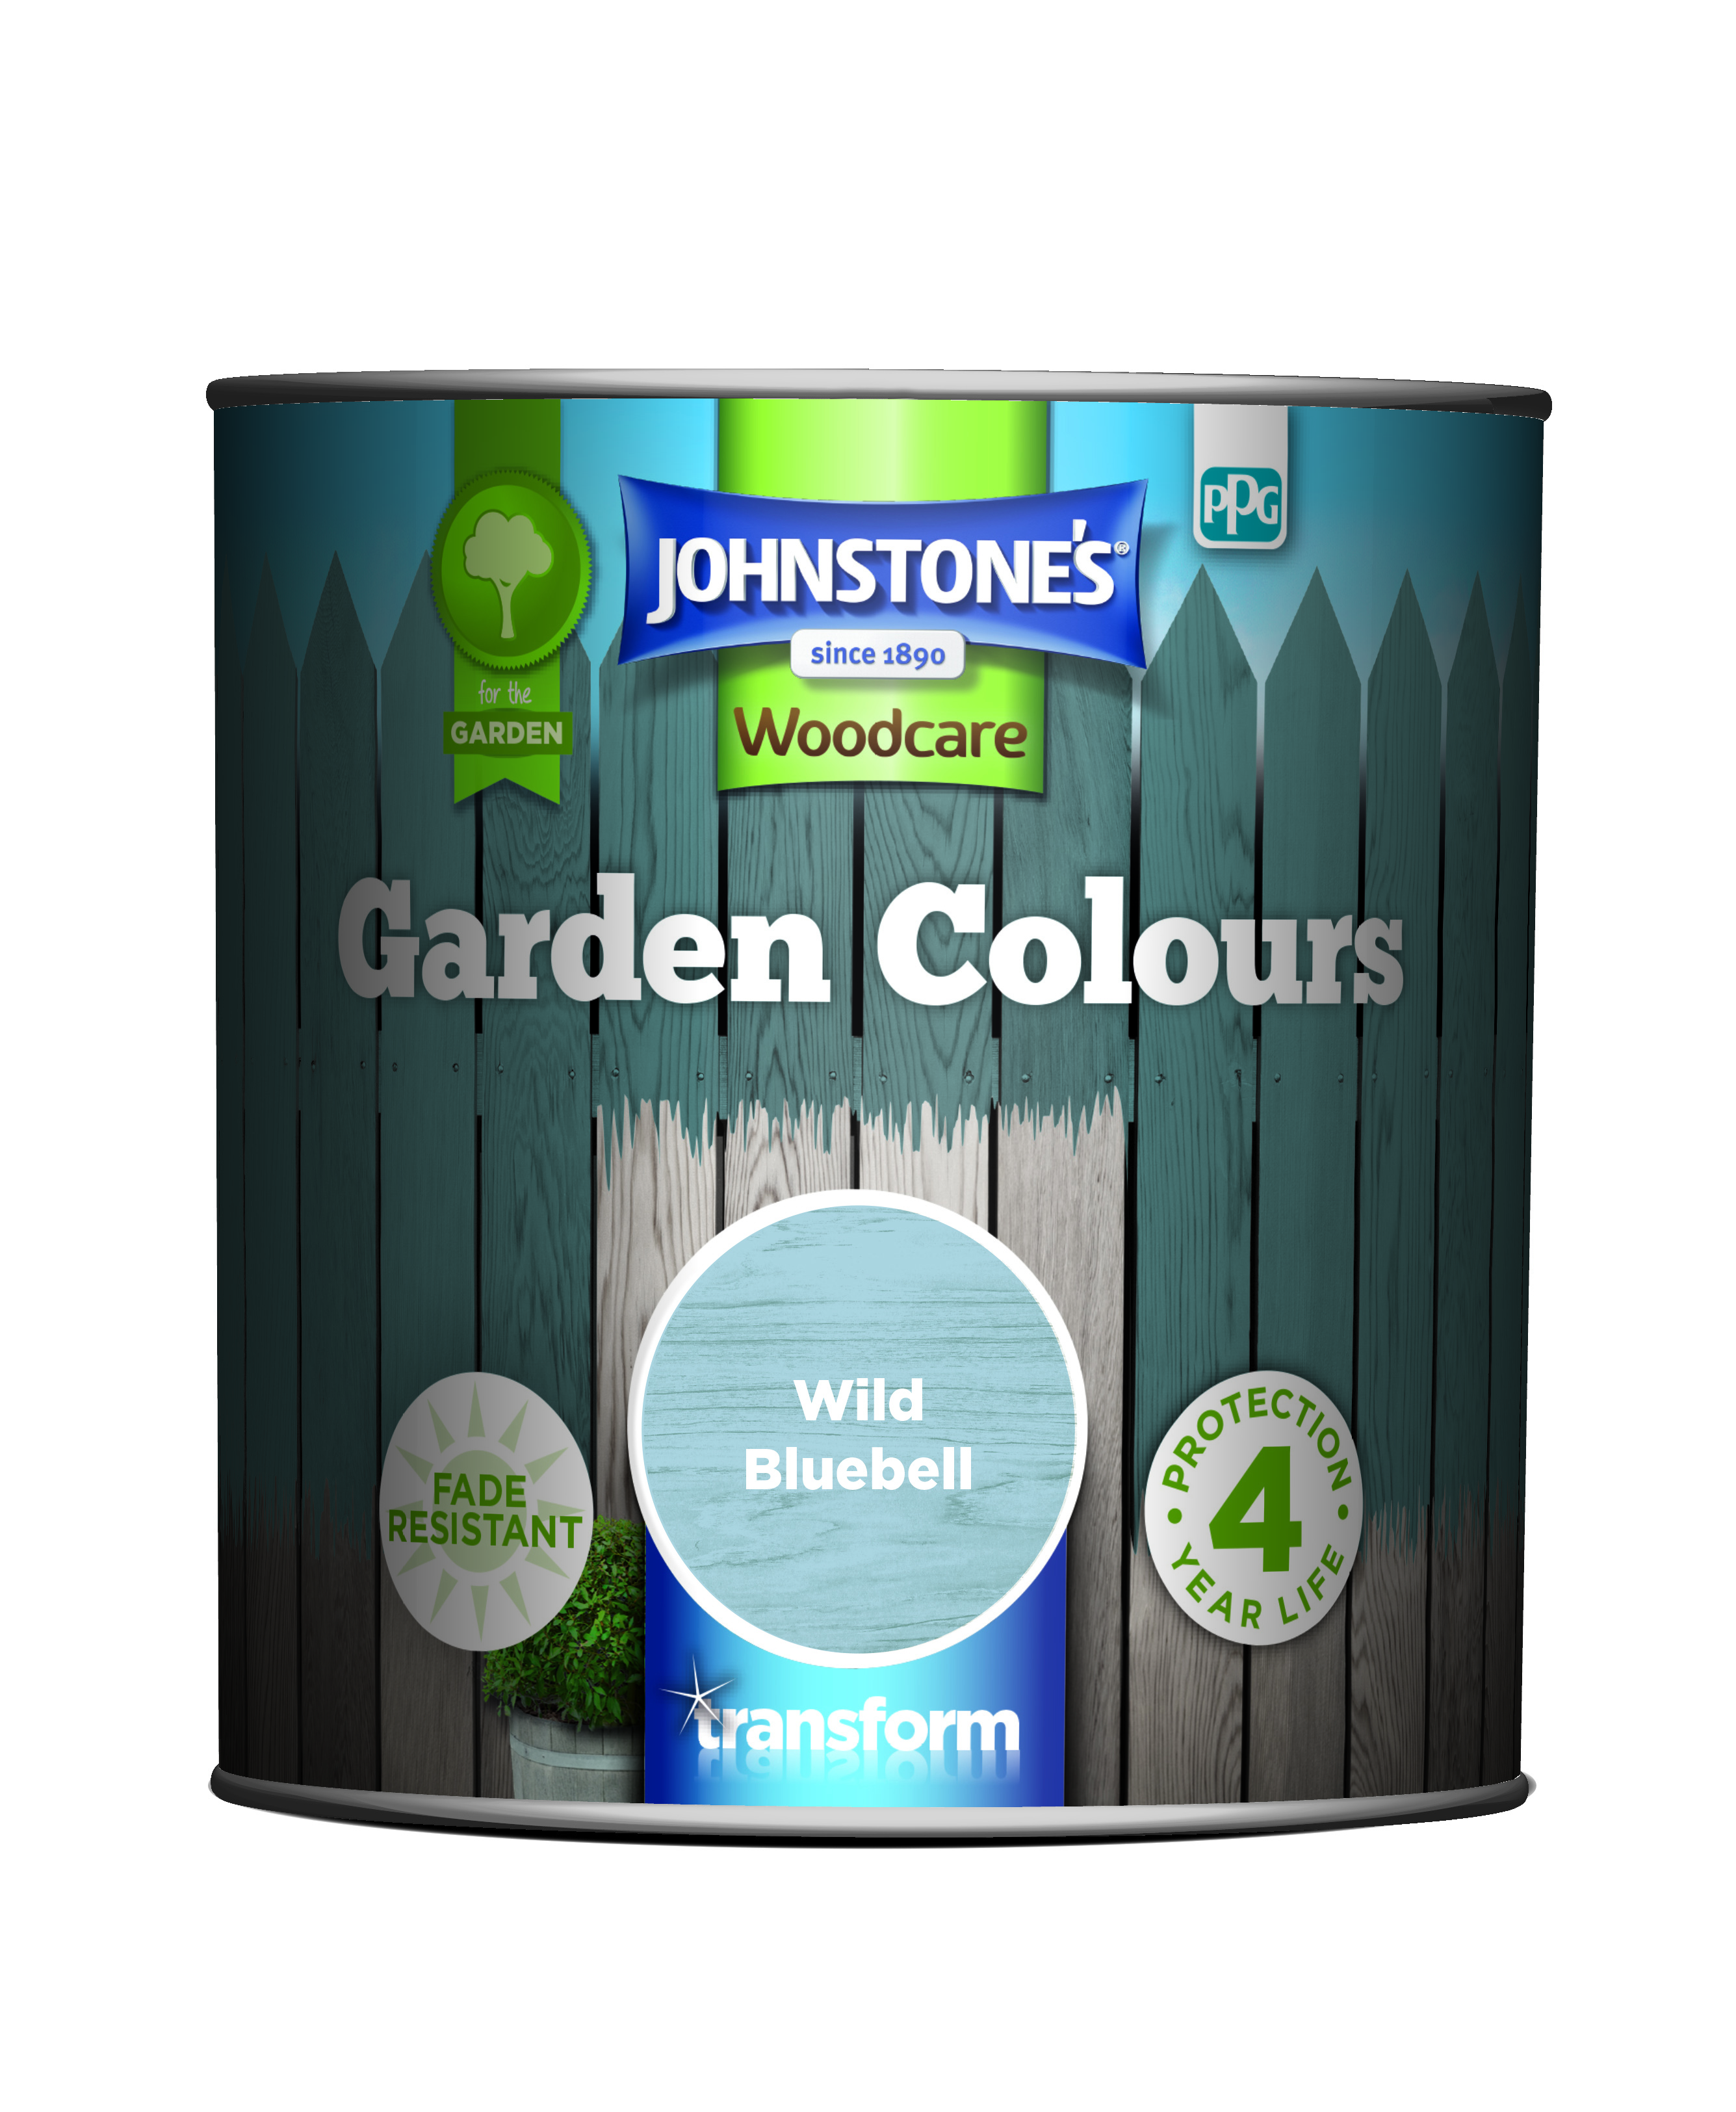 Johnstone's Garden Colours Wild Bluebell 1l